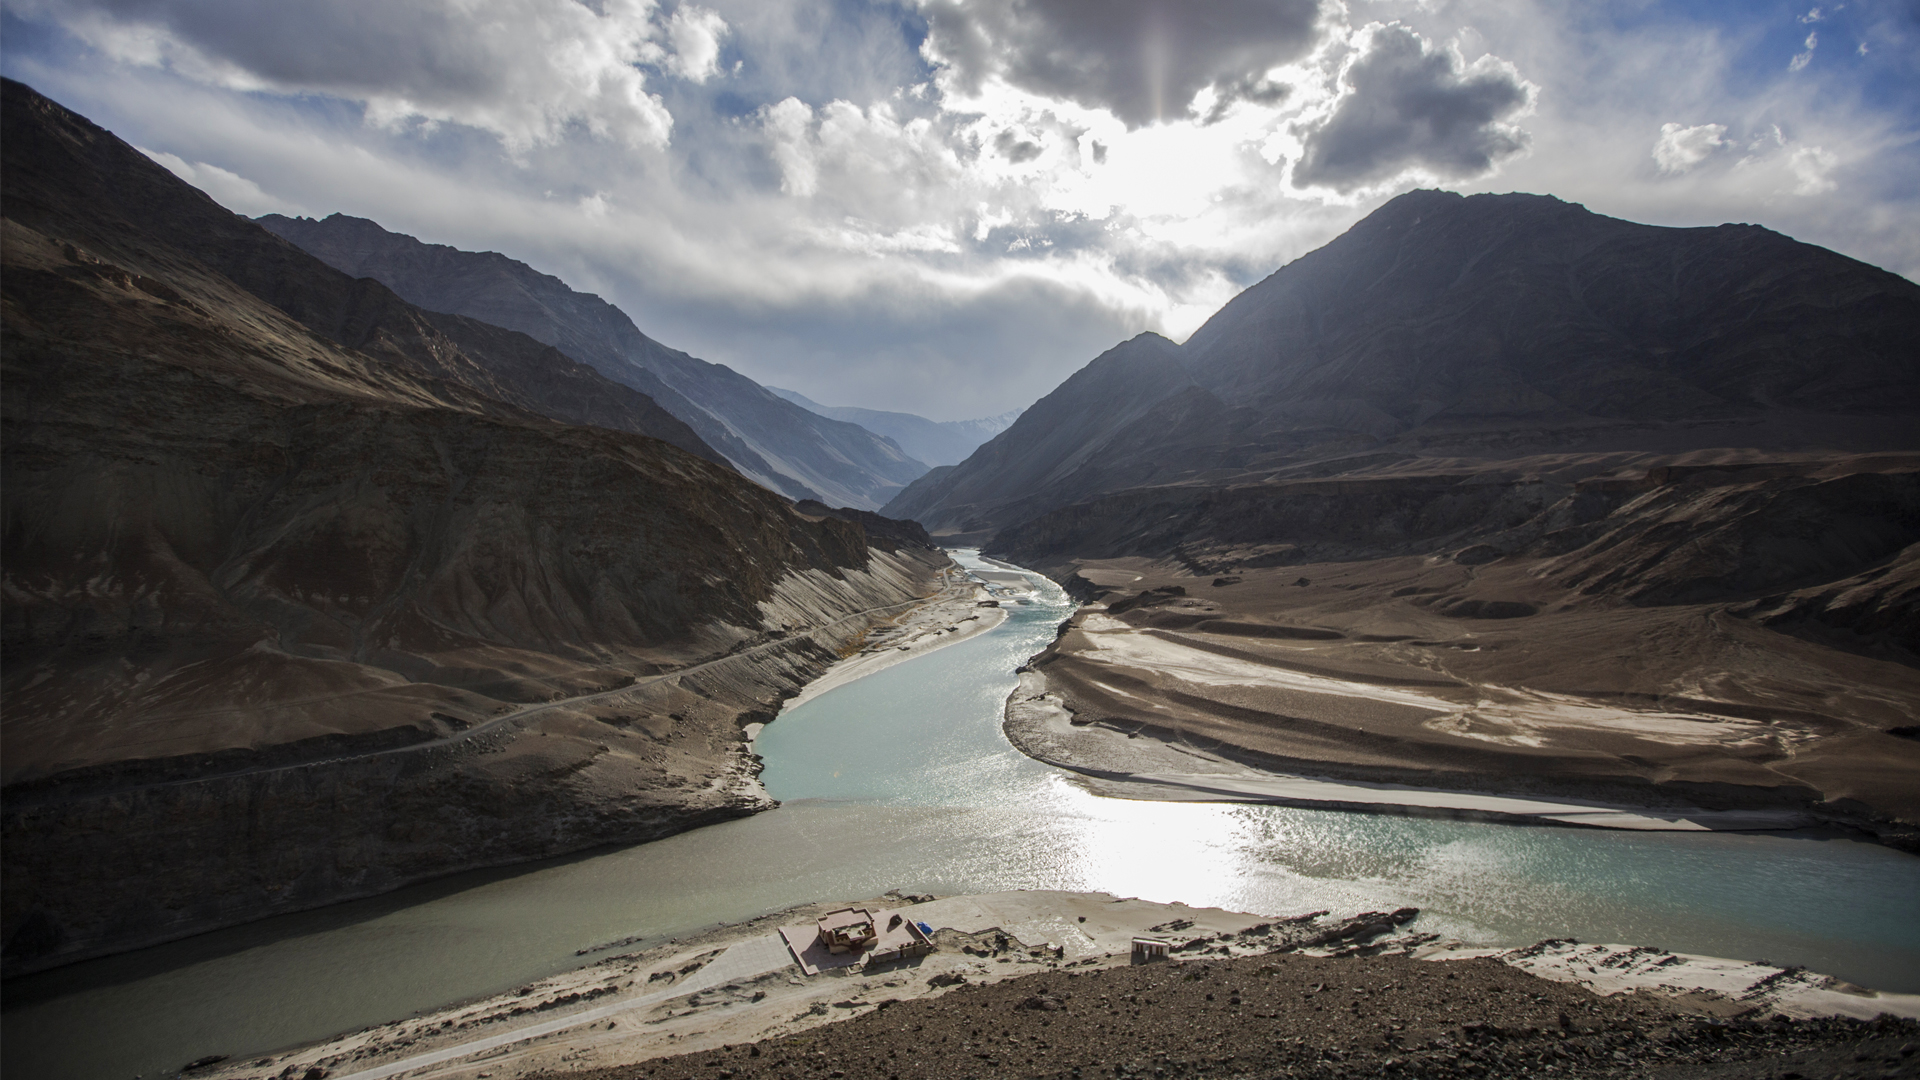 Dam Issues At Centre Of India, Pakistan Indus Waters Treaty Discussions